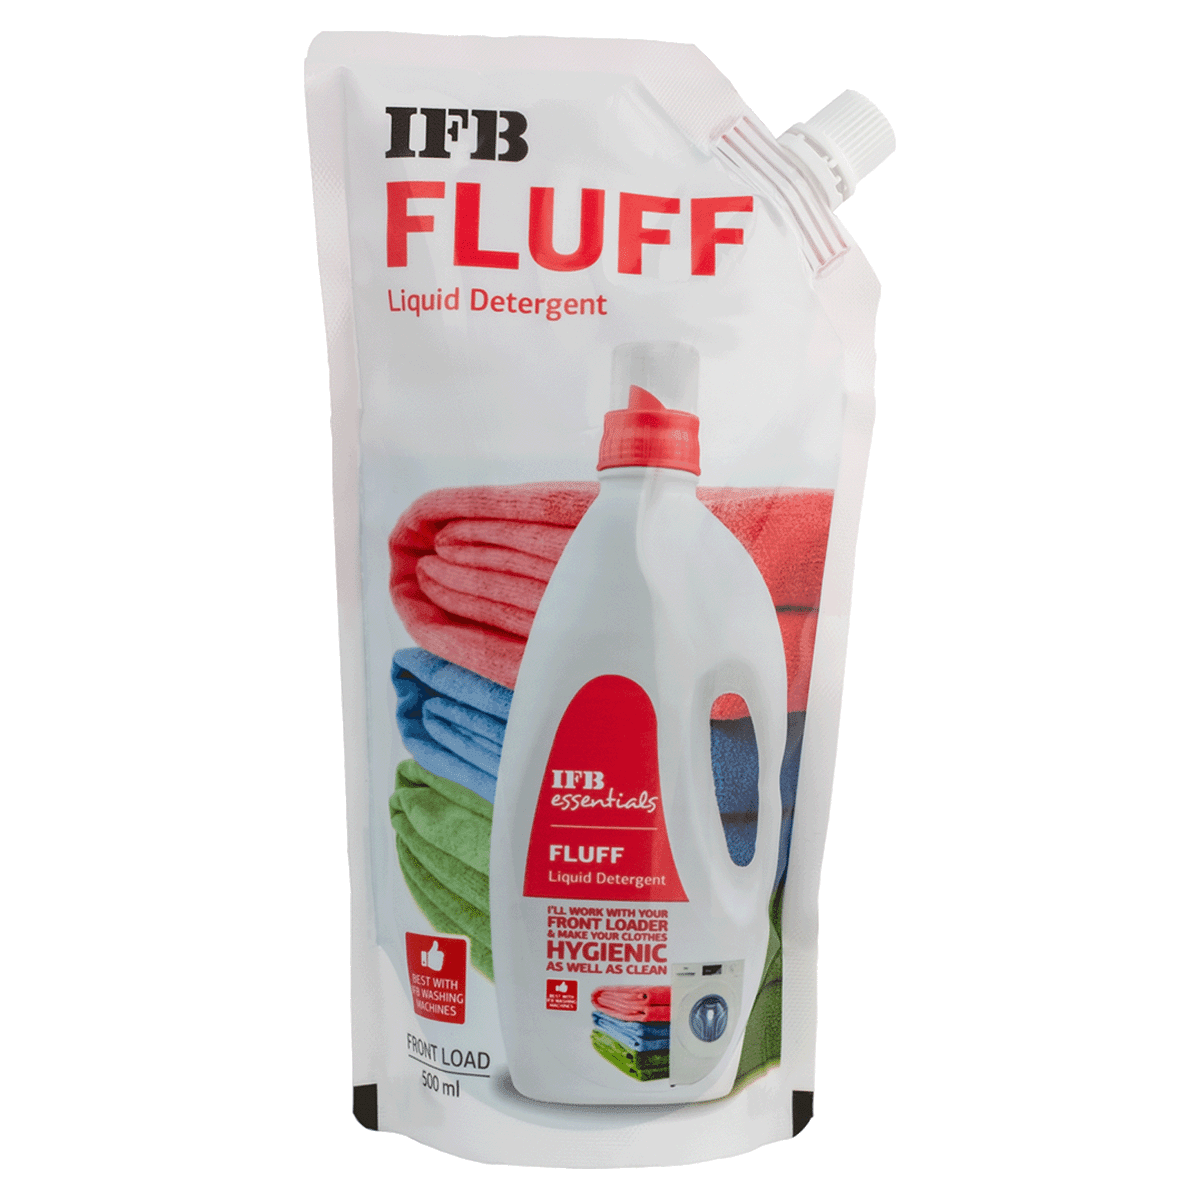 IFB Essentials Fluff Liquid Detergent Refill Pack for Front Load Washing Machines (500ml, Fluff Refill pack, White)